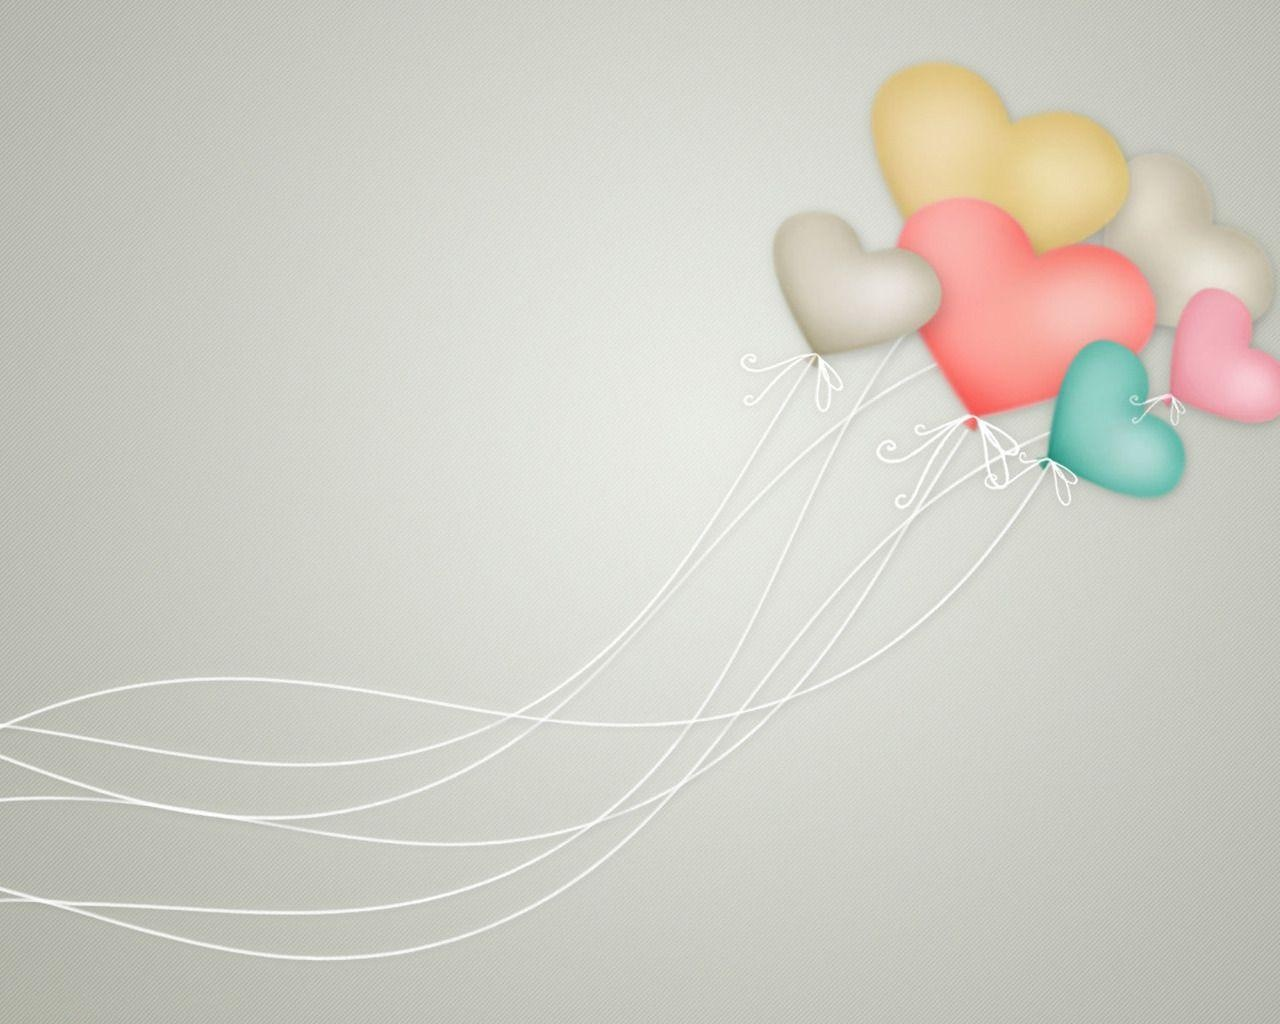 Balloons Heart of Love PPT Backgrounds